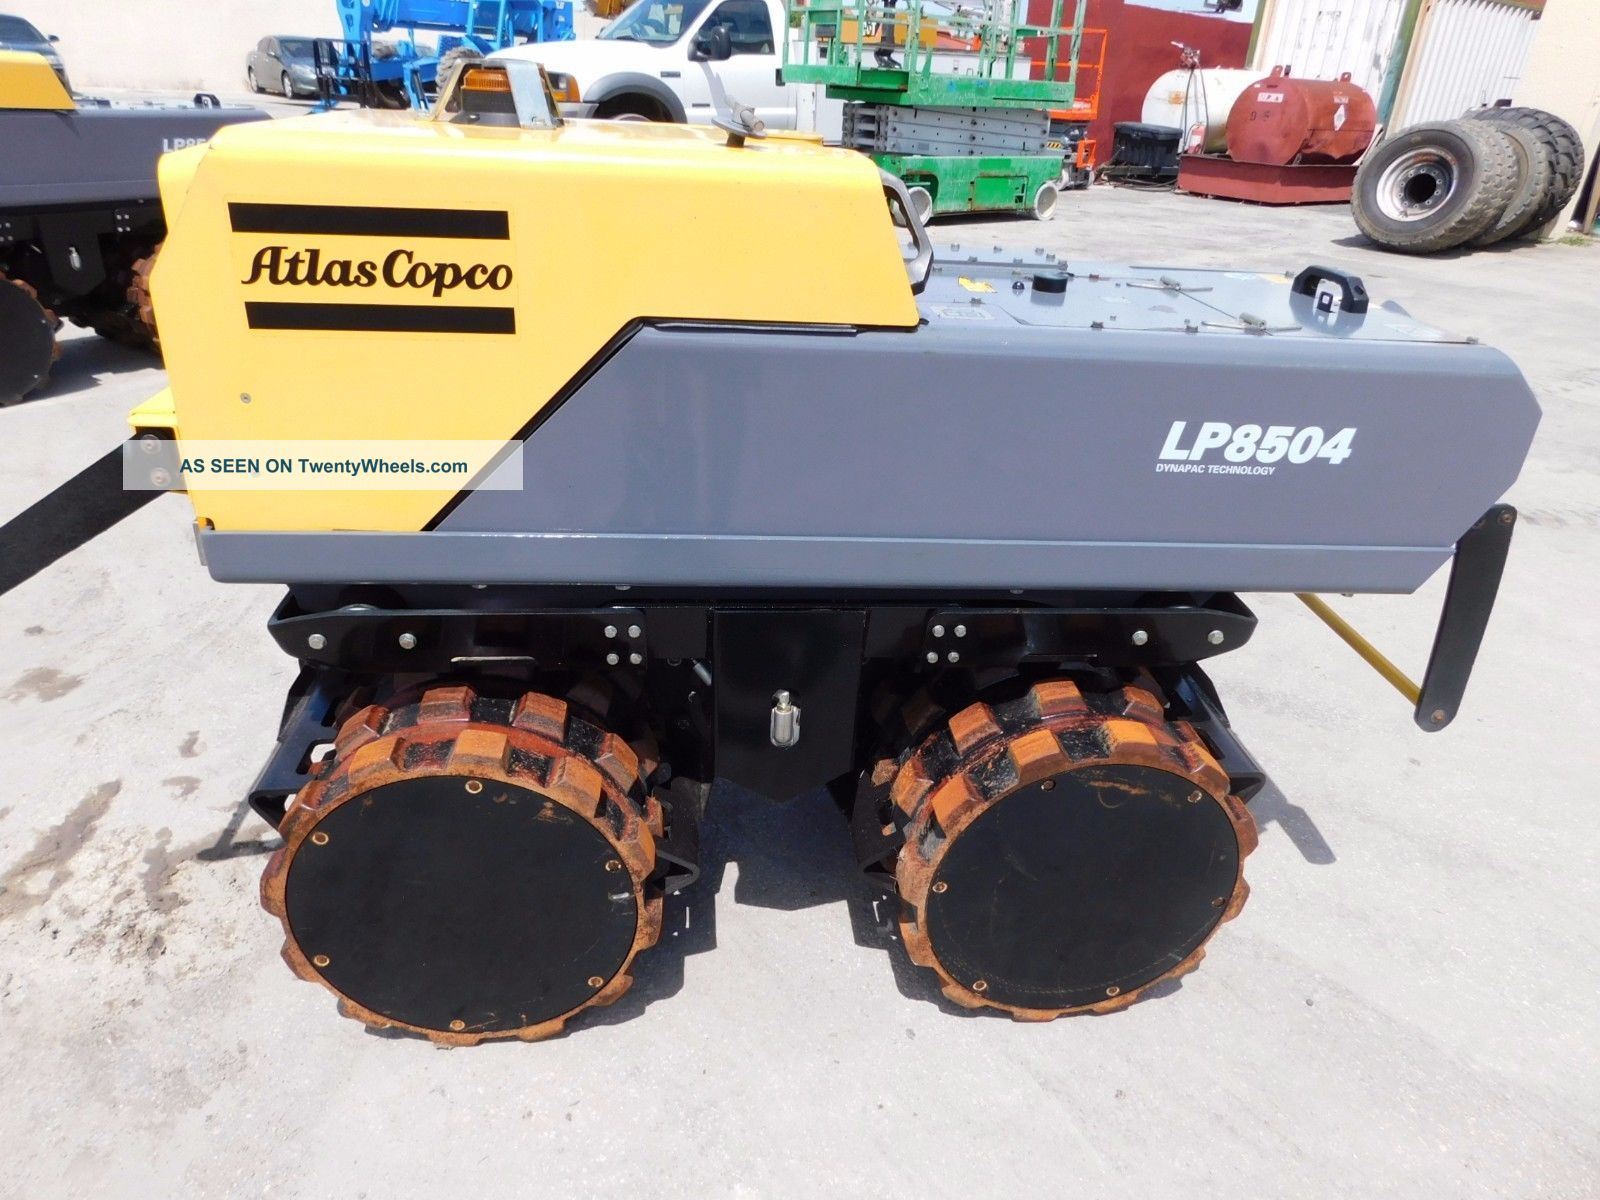 2014 Atlas Copco Lp8504 - Remote Control Trench Compactor - Padfoot Tandem Drums Compactors & Rollers - Riding photo